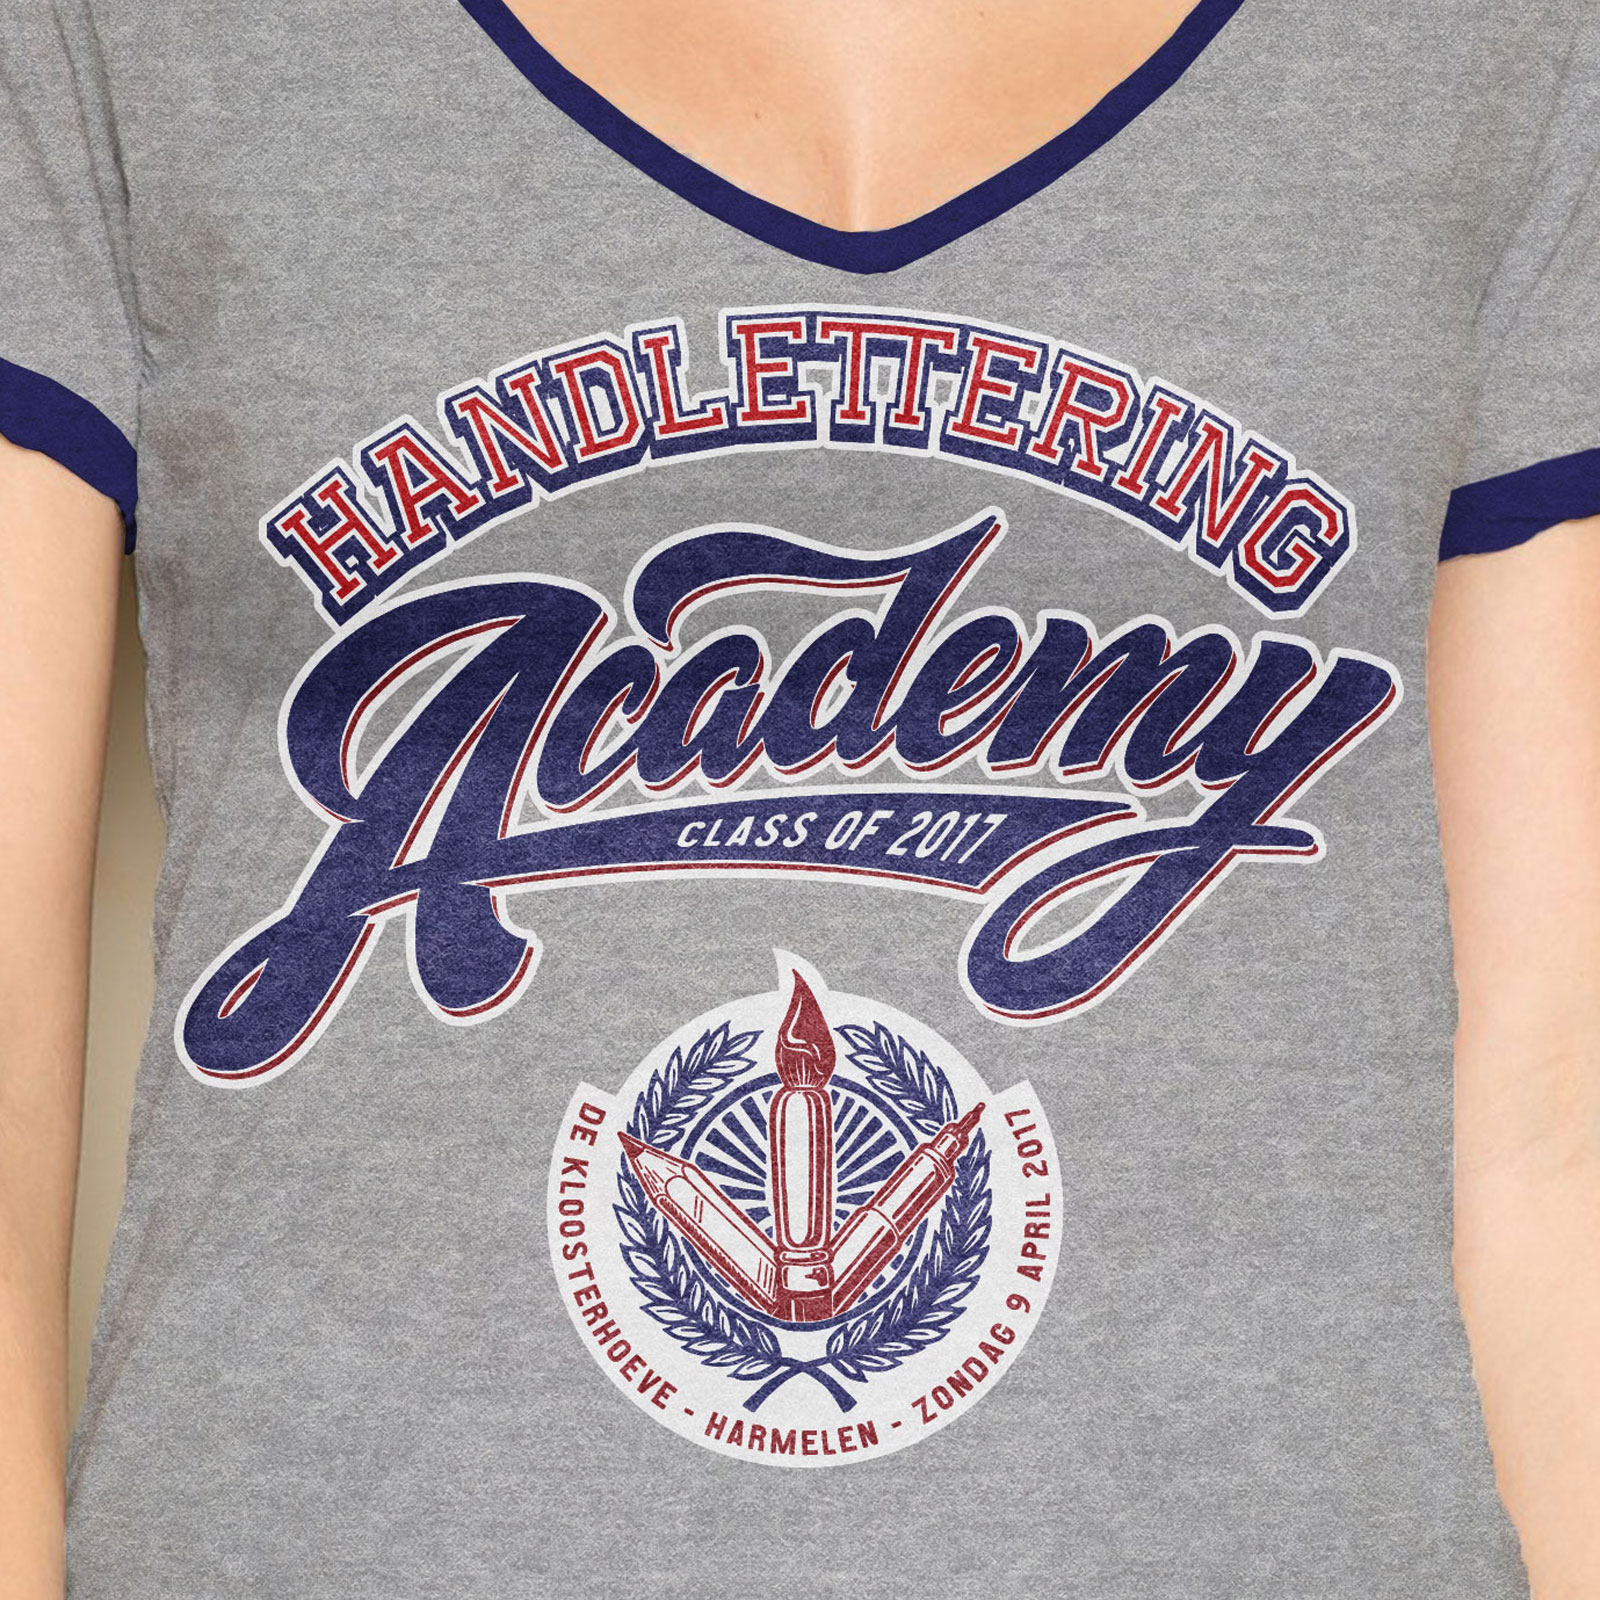 Handlettering Academy